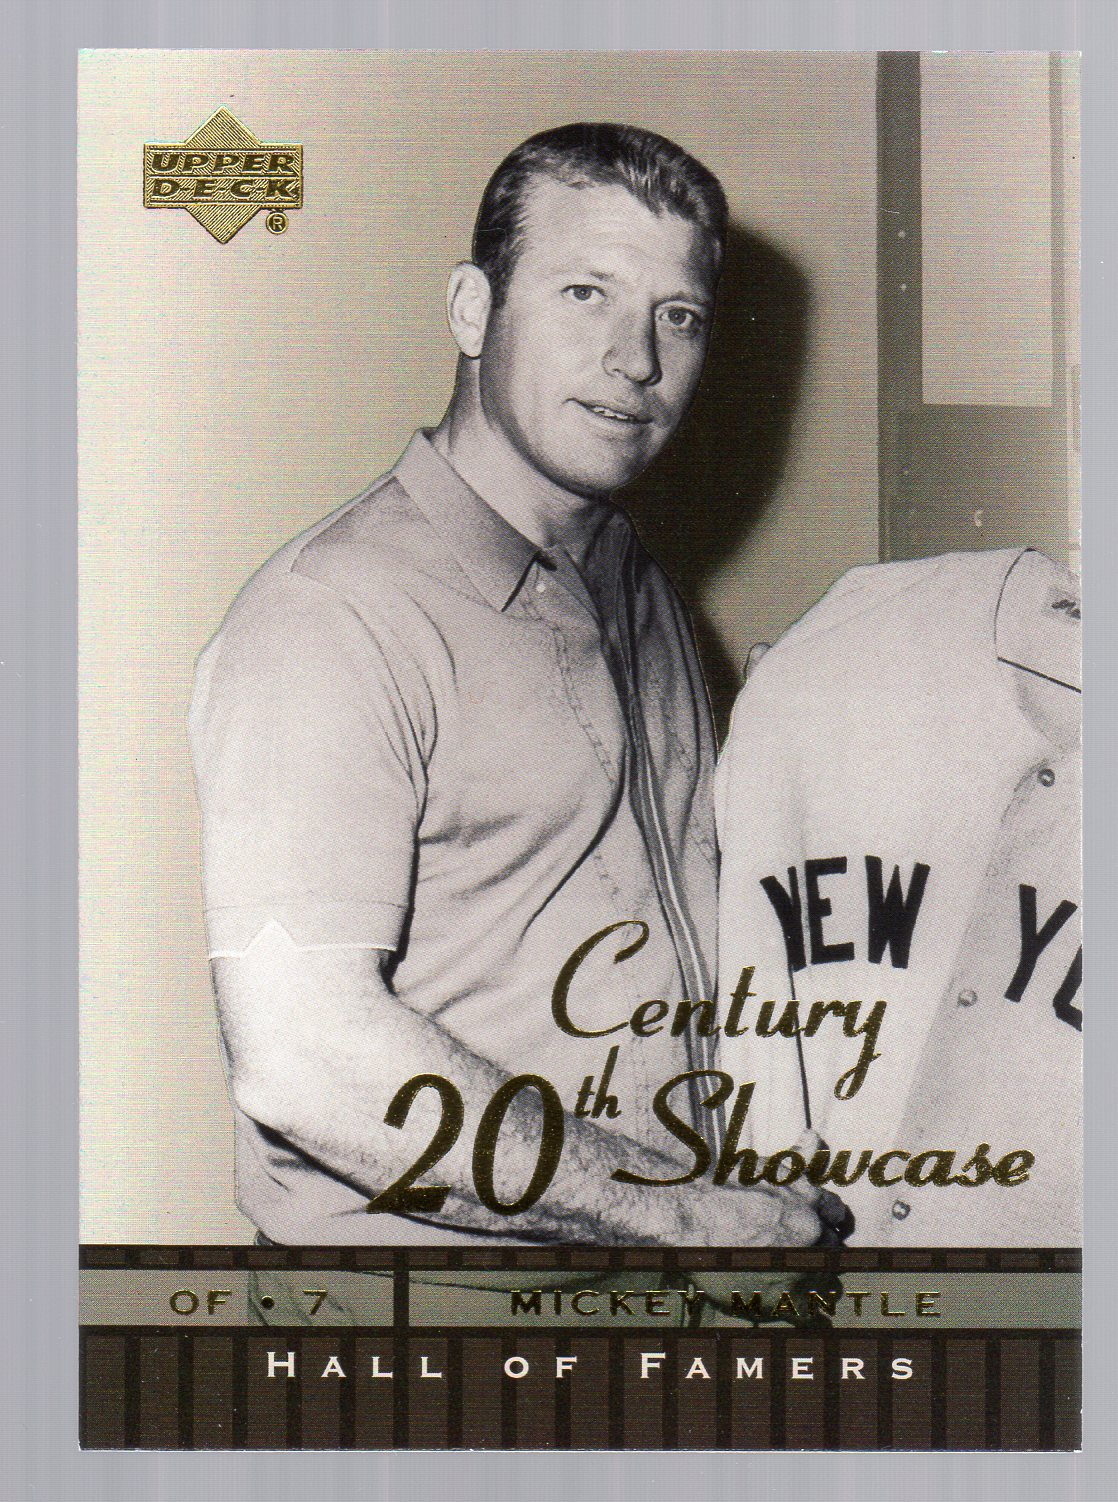 2001 Upper Deck Hall of Famers 20th Century Showcase #S5 Mickey Mantle